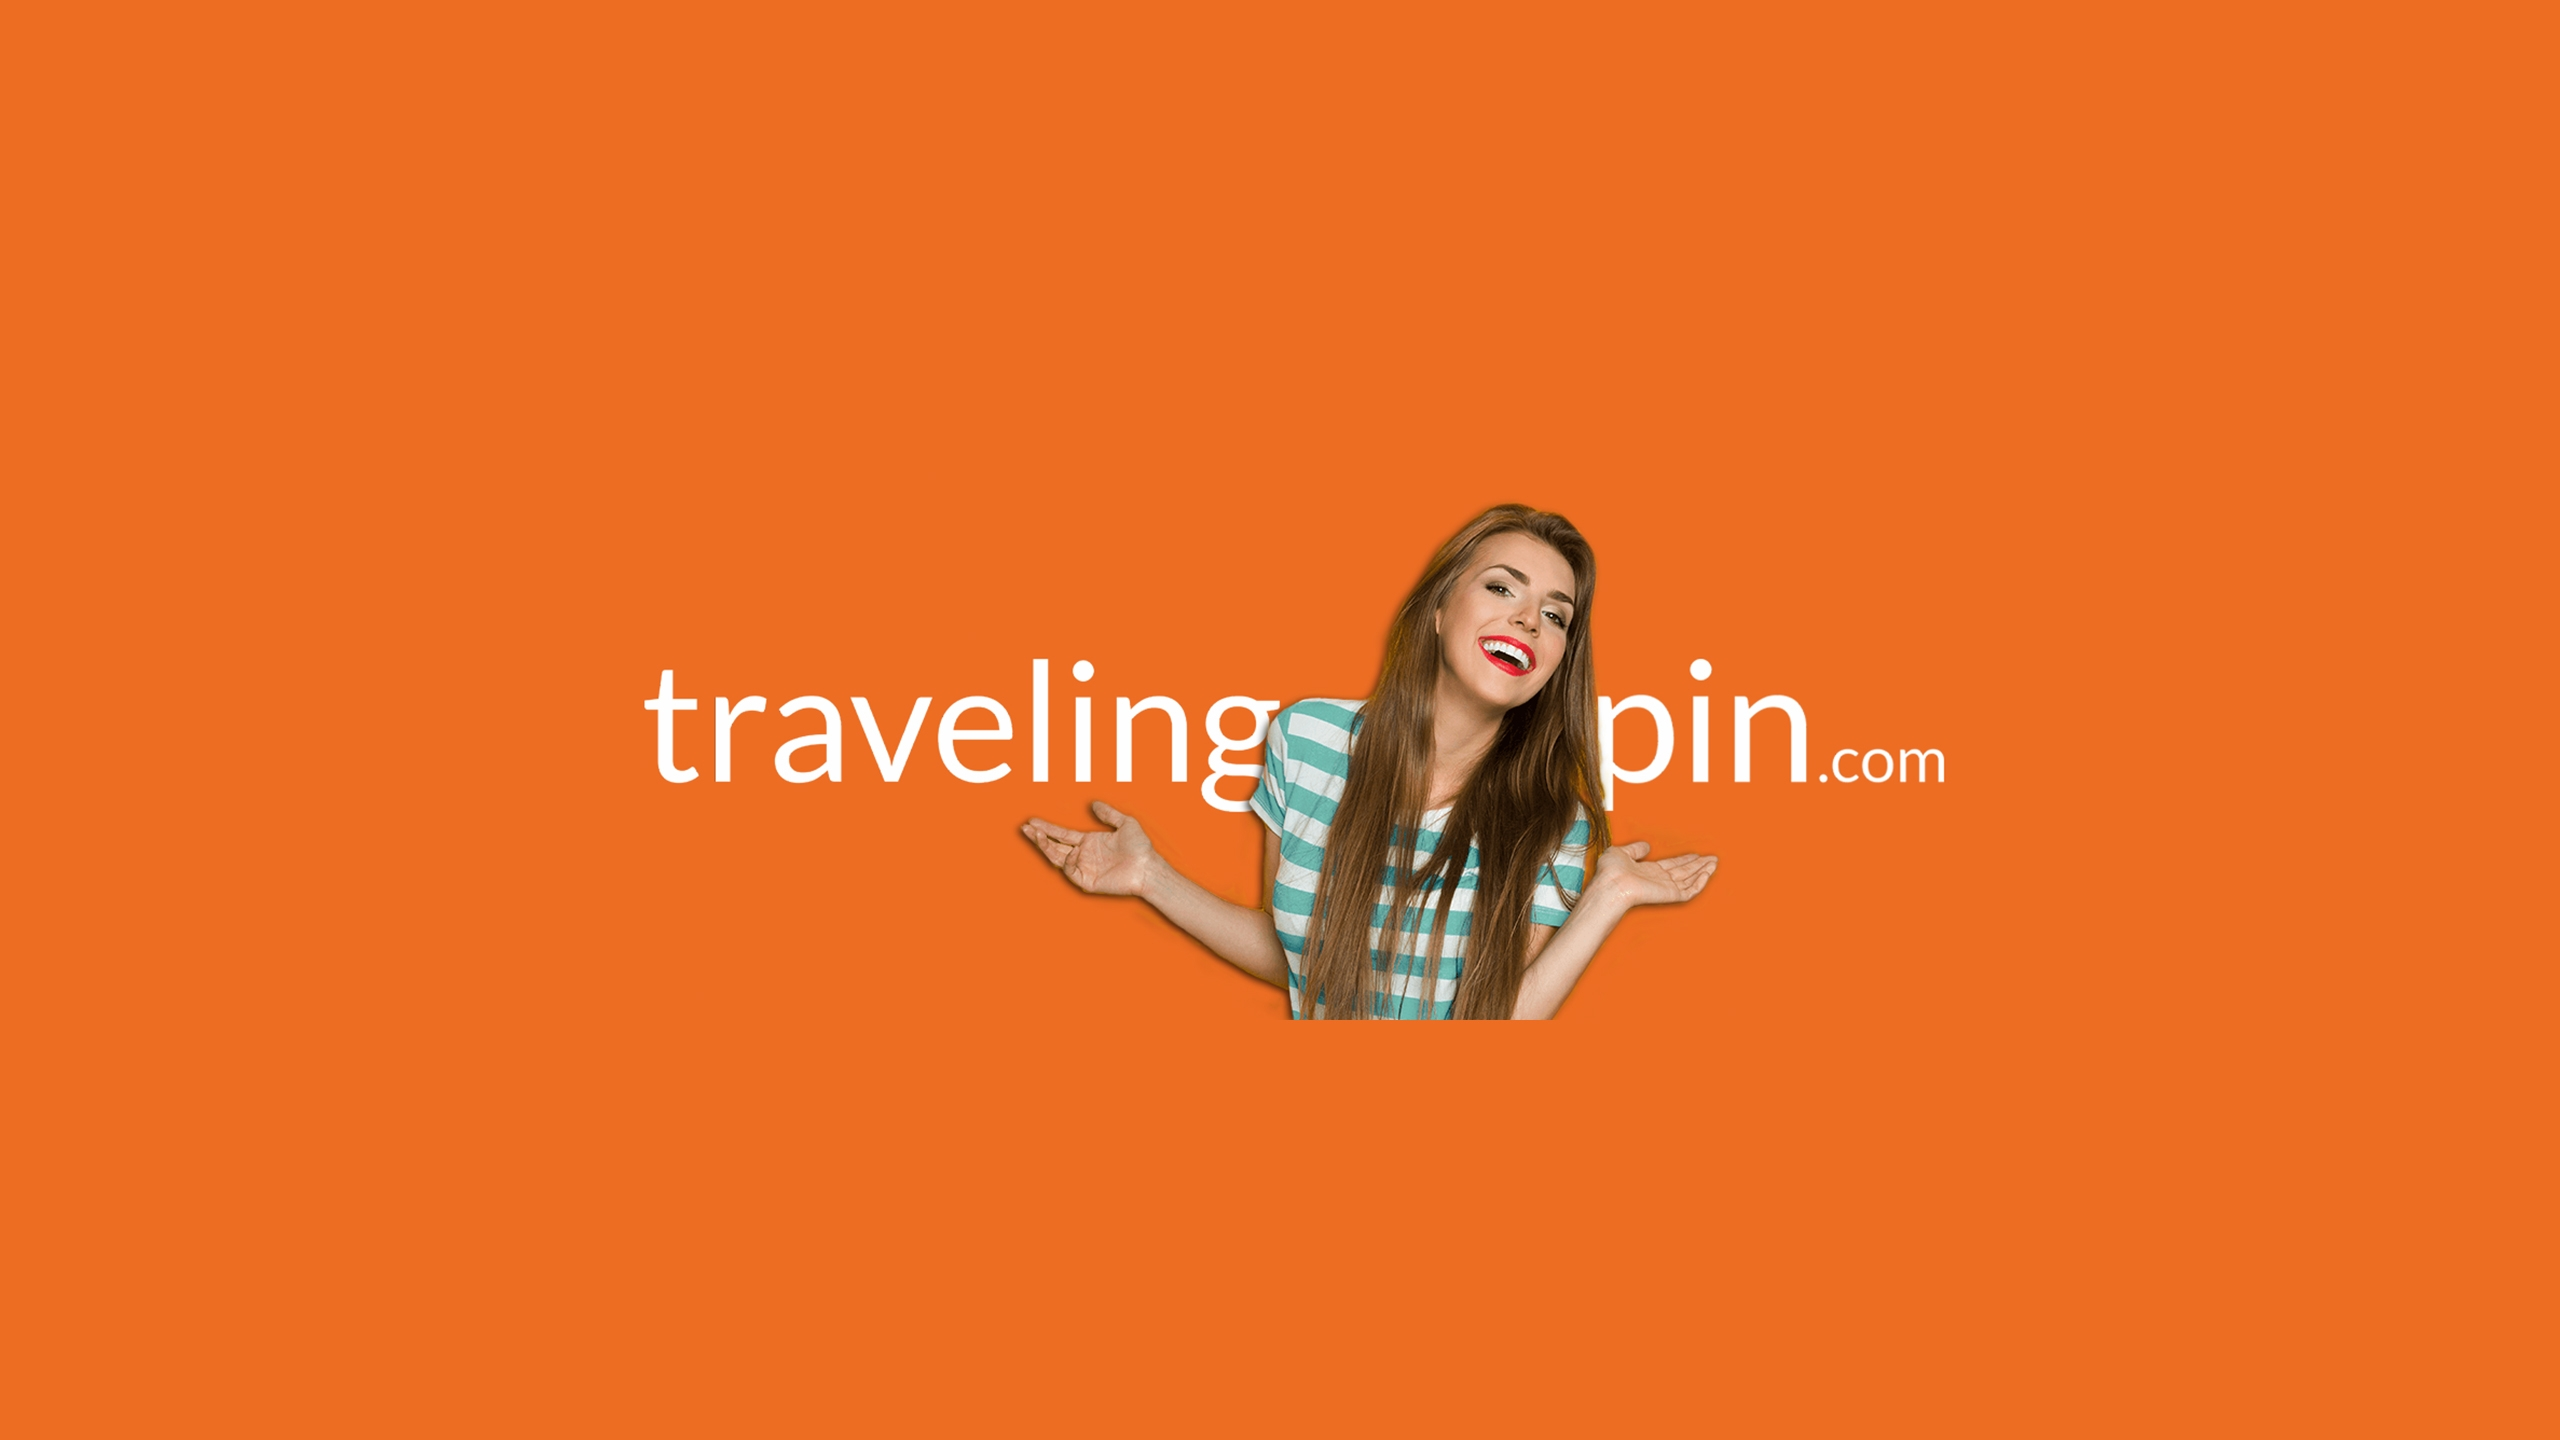 Travelingpin (@travelingpin) Cover Image